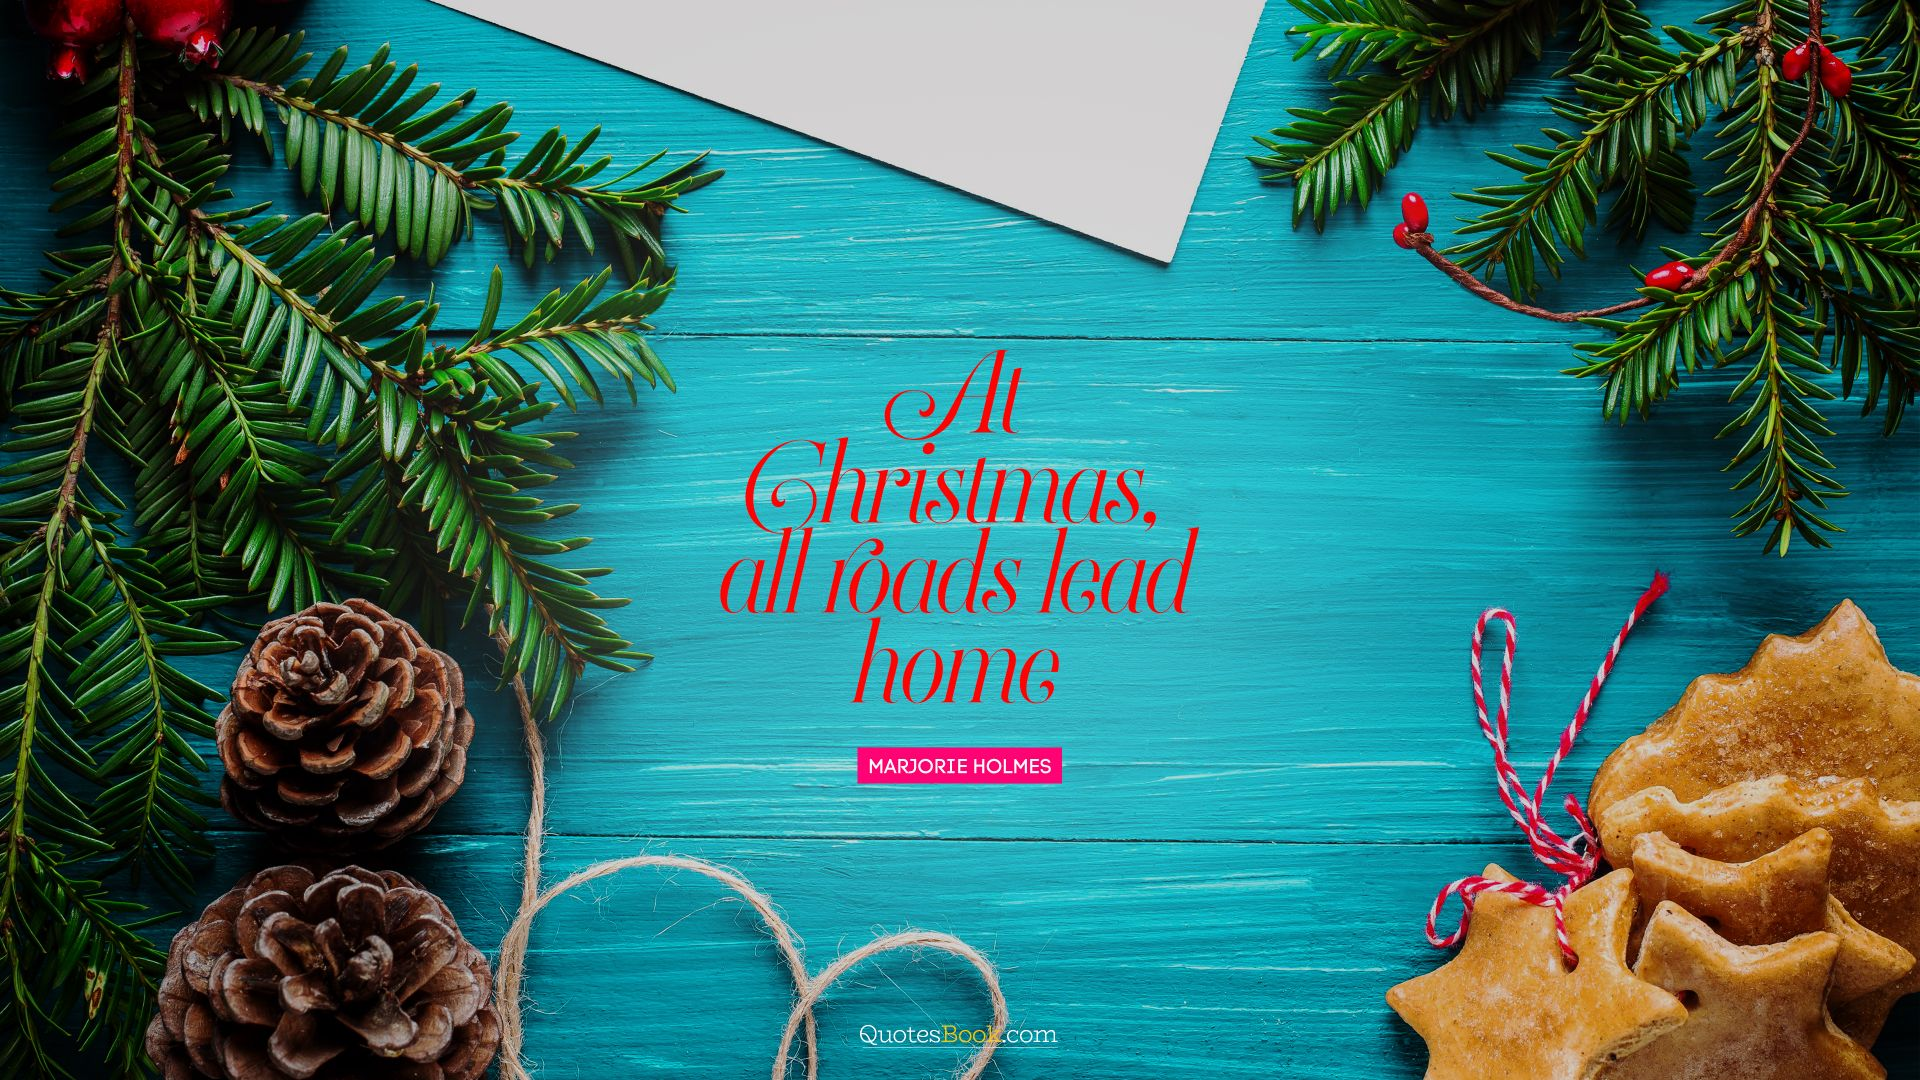 At Christmas, all roads lead home. - Quote by Marjorie Holmes